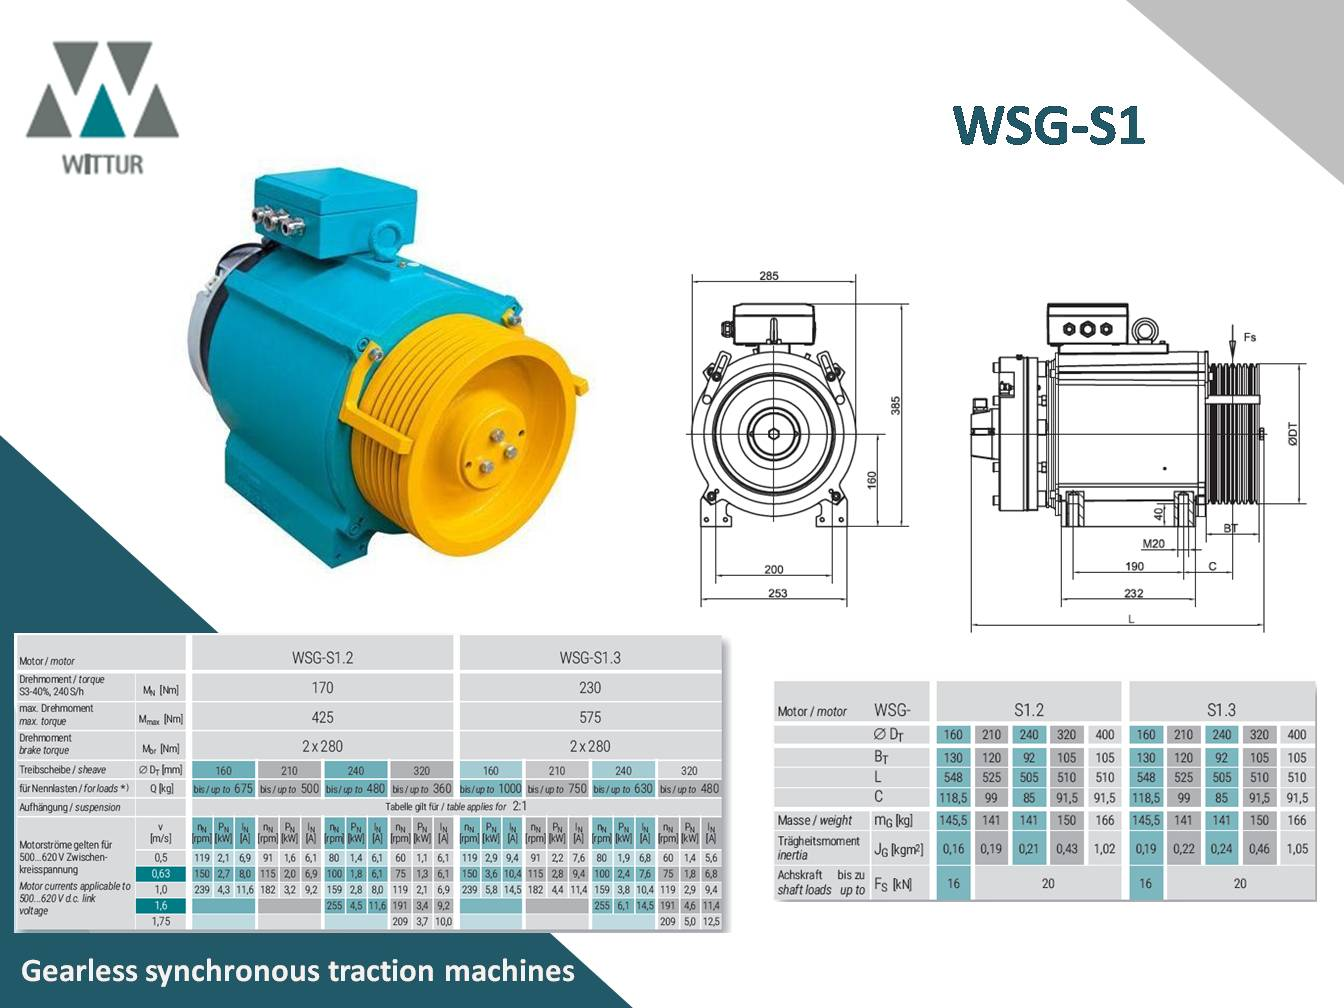 http://aasansor.ir/images/product/3_type_of_parts/1_motor/2_gearboxless/1_germany/witur/Slide1.jpg